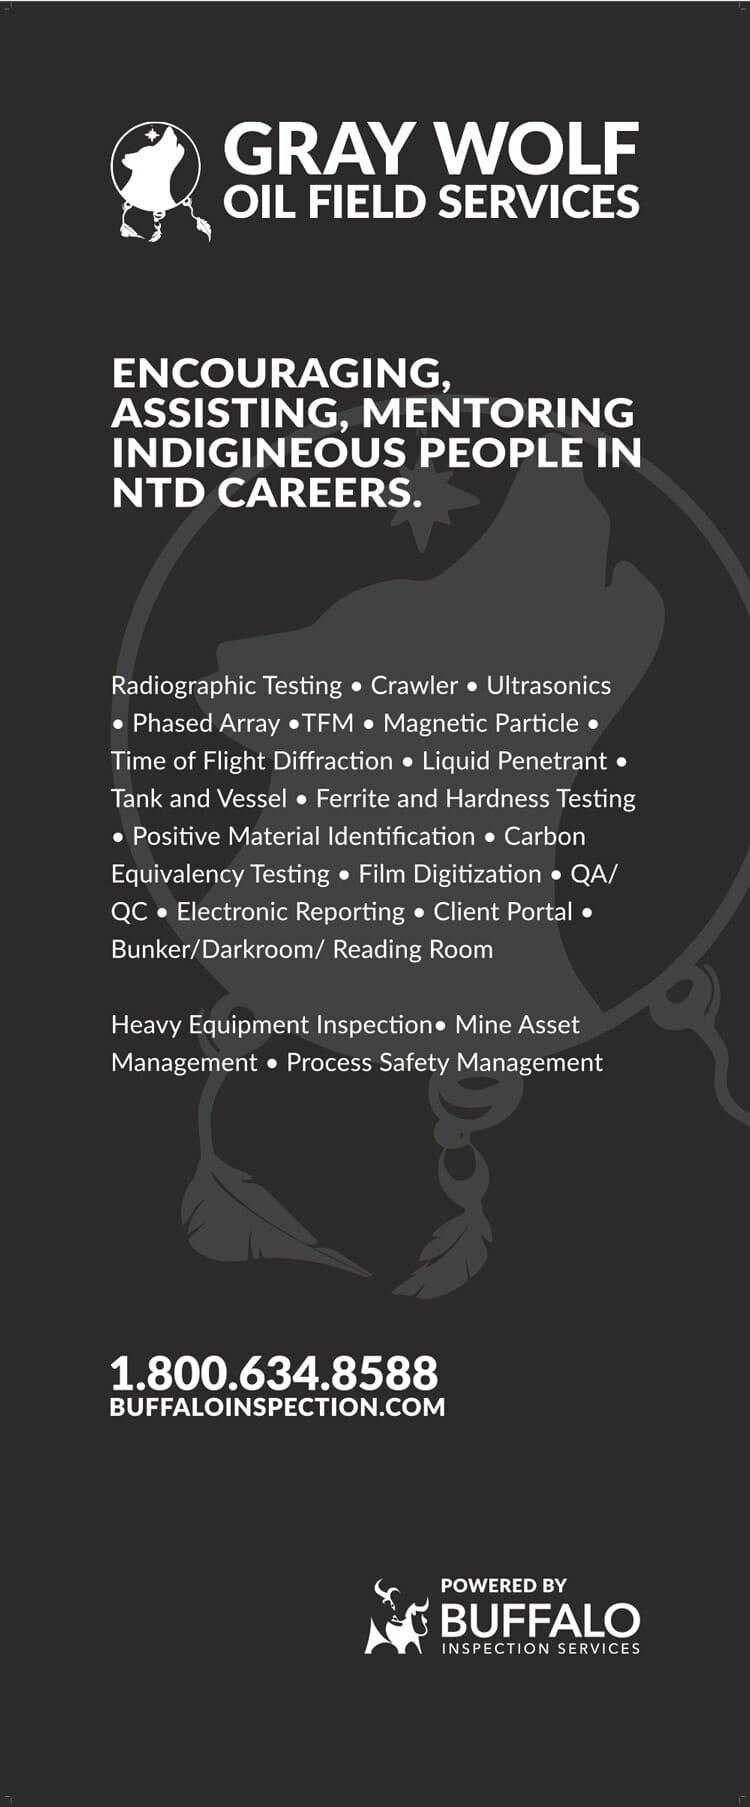 Gray Buffalo NDT inspection services listed.